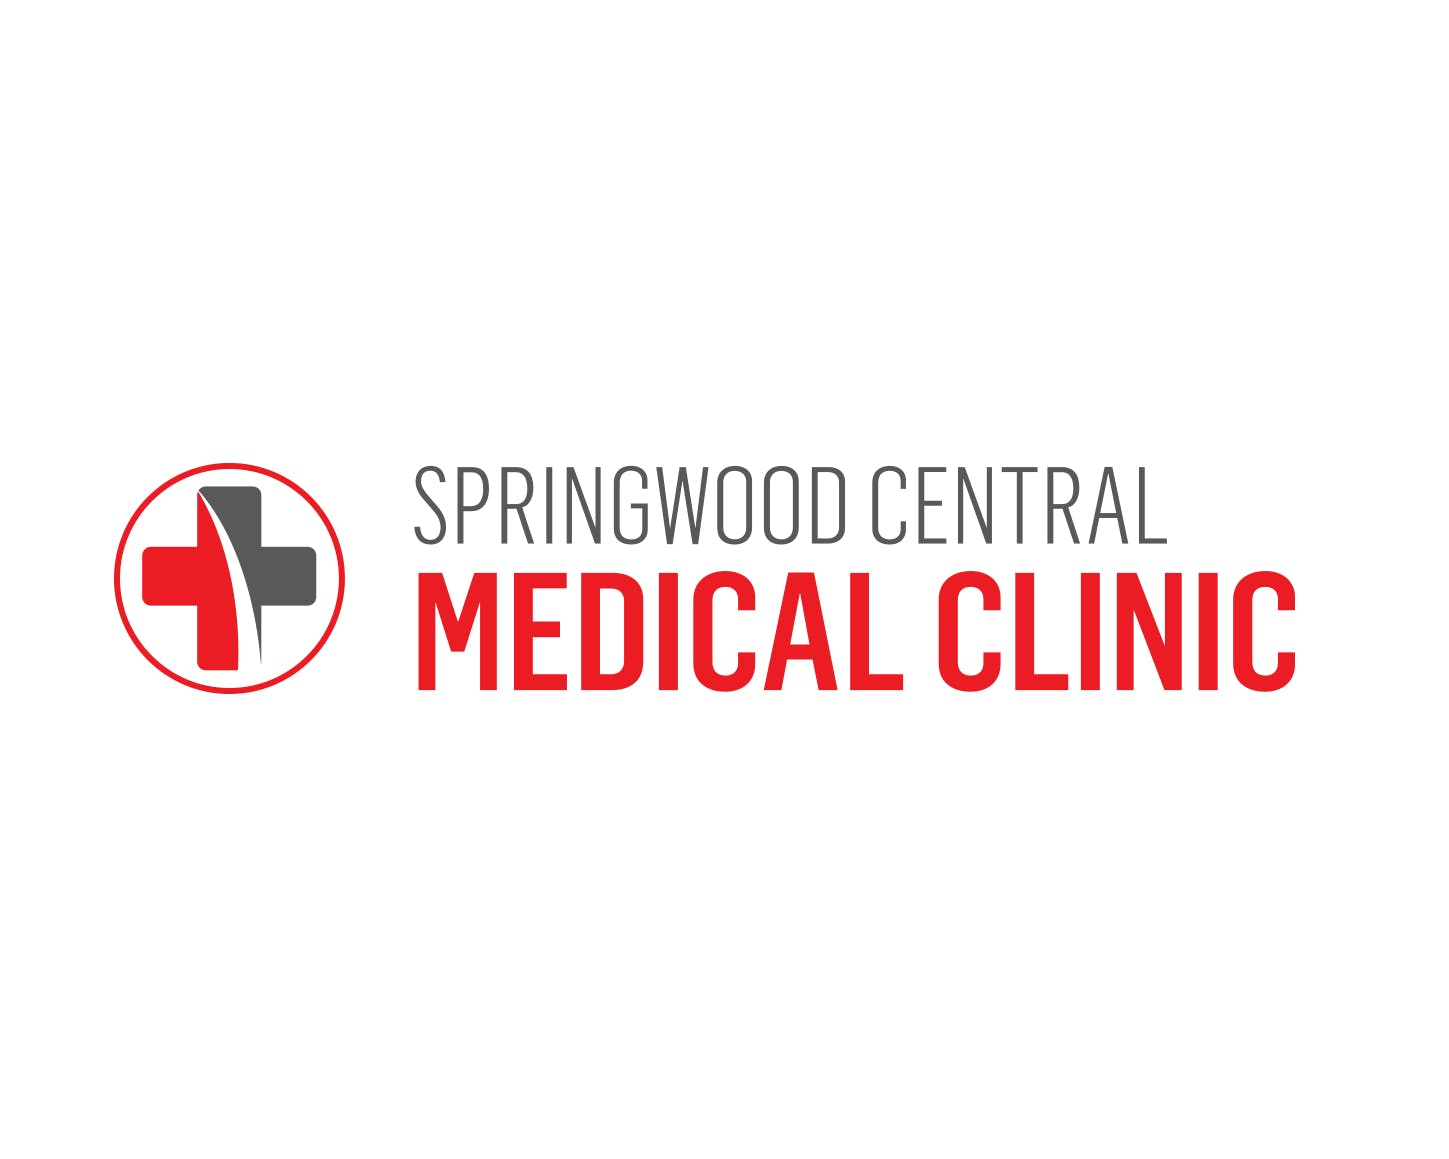 Springwood Central Medical Clinic Logo